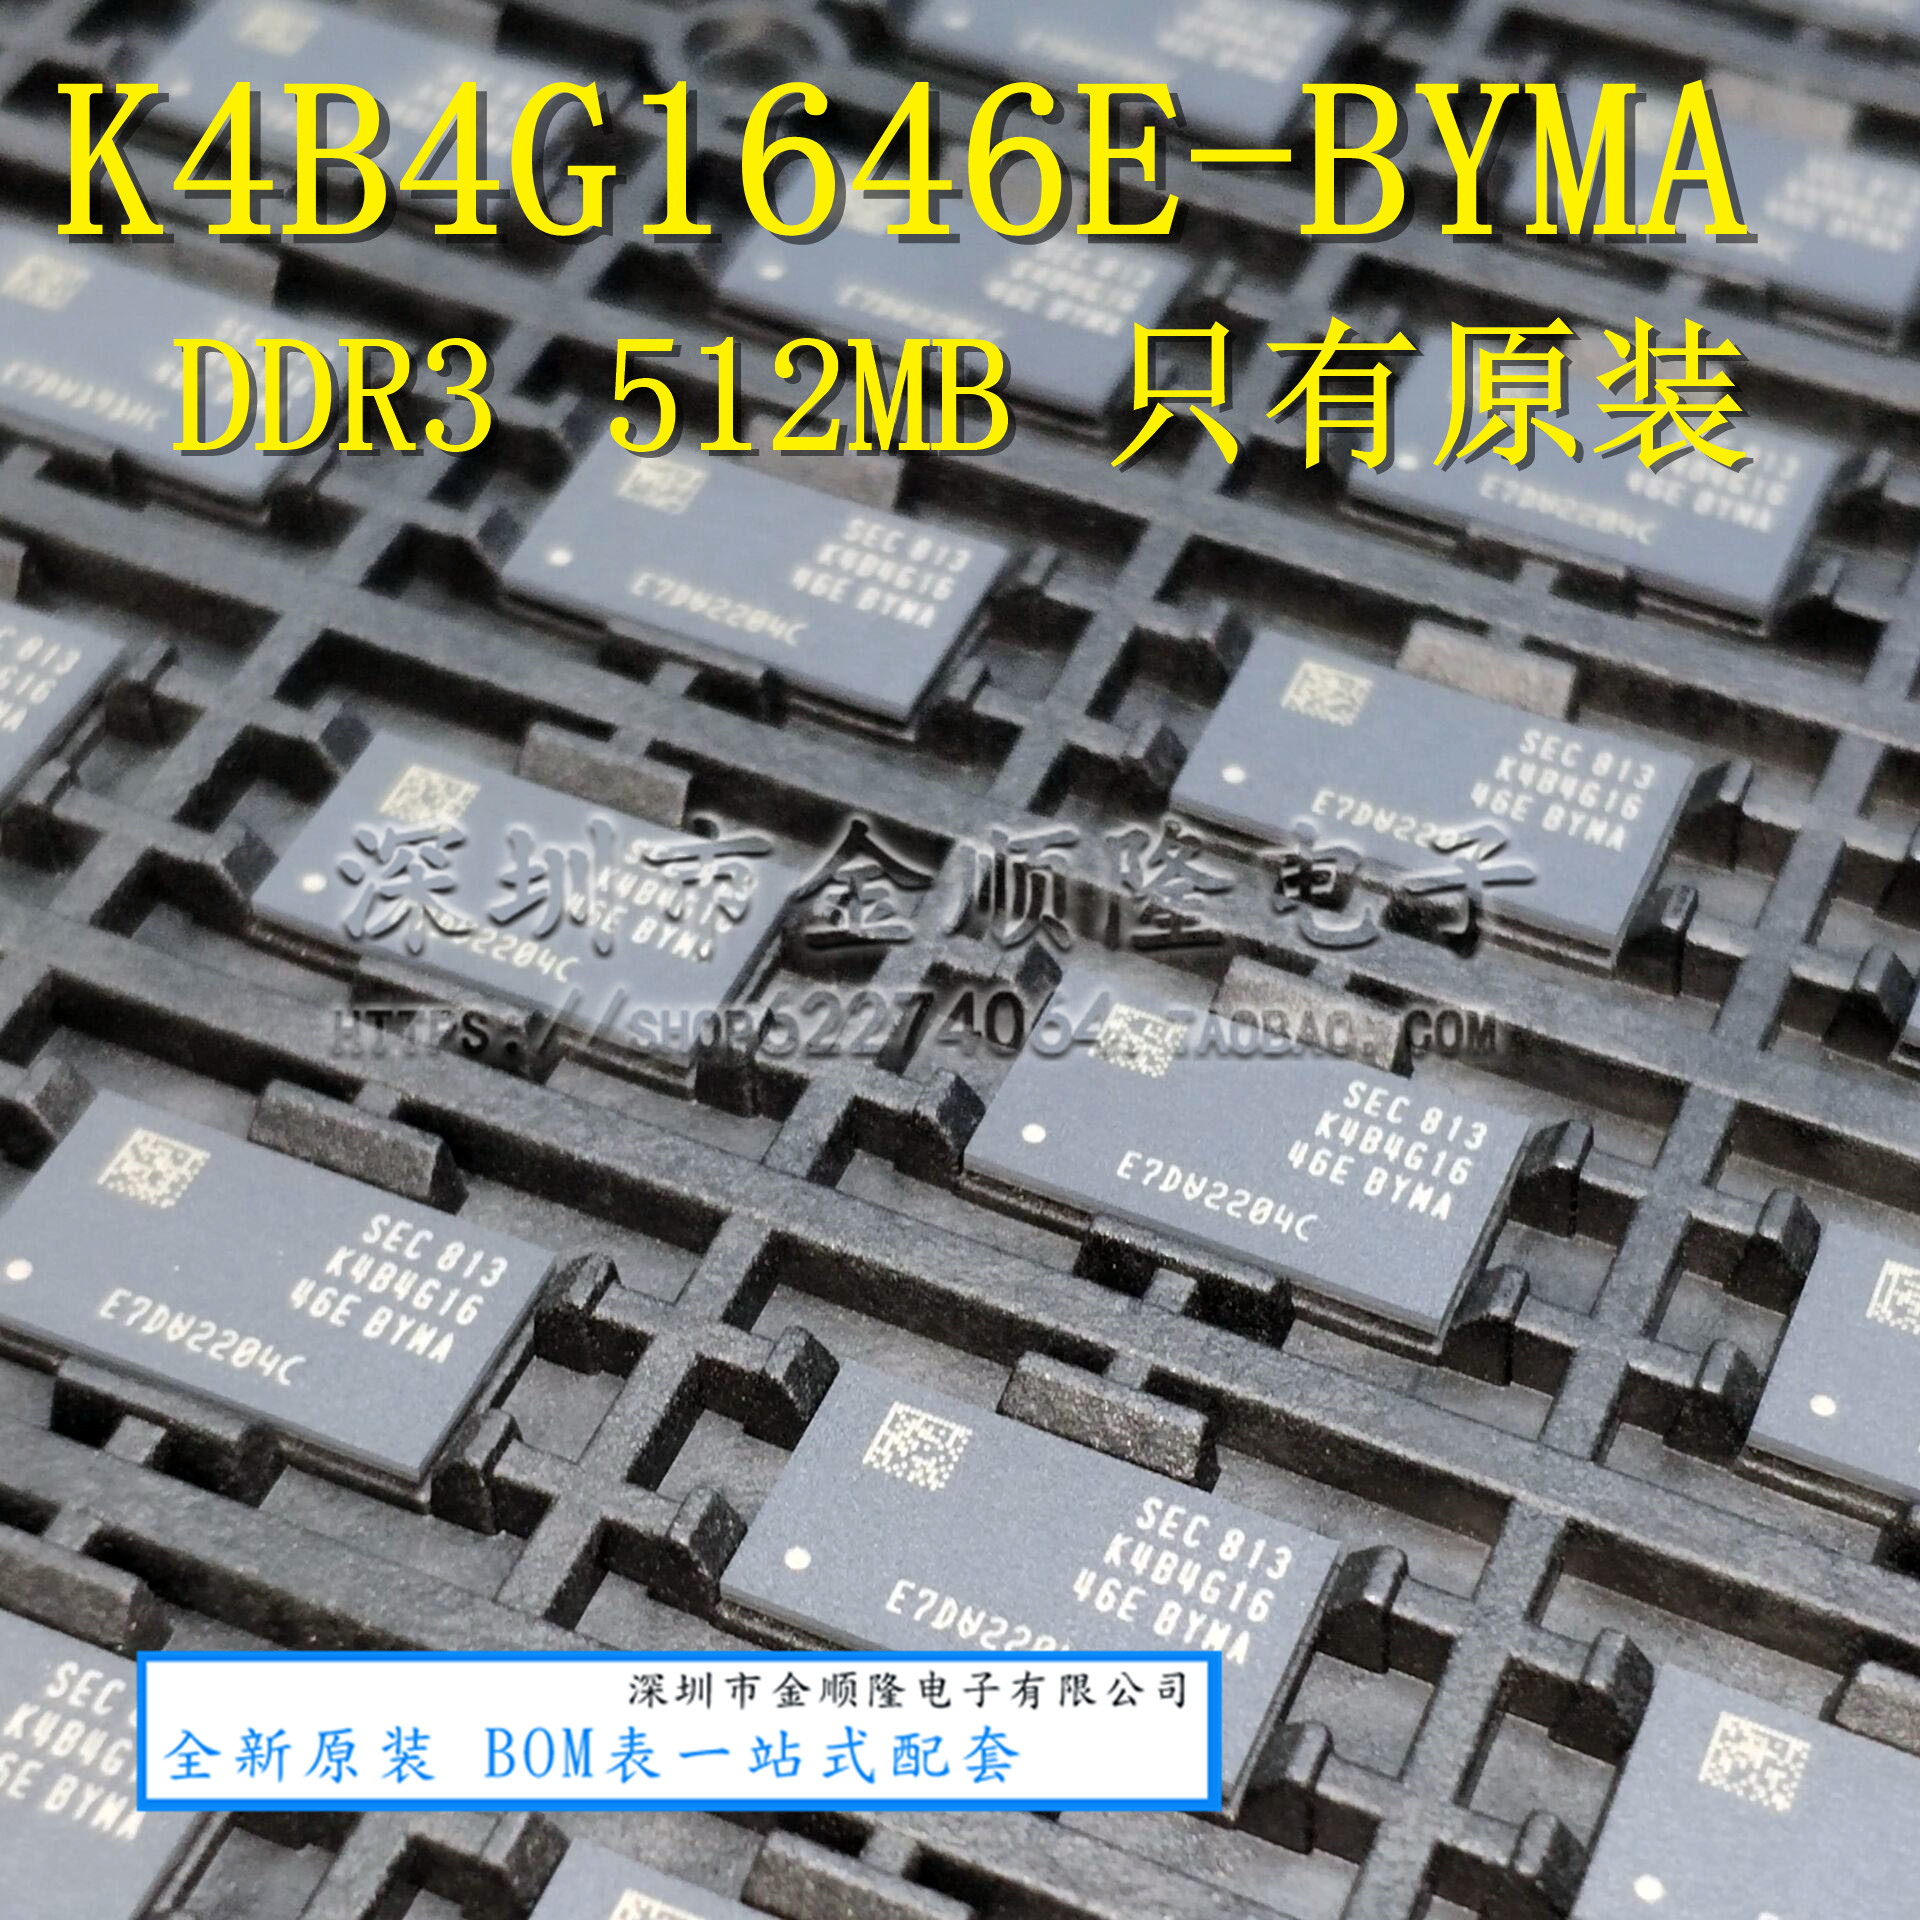 Only the original DDR3 16 * 4GB k4b4g1646e-byma BGA is genuine and genuine